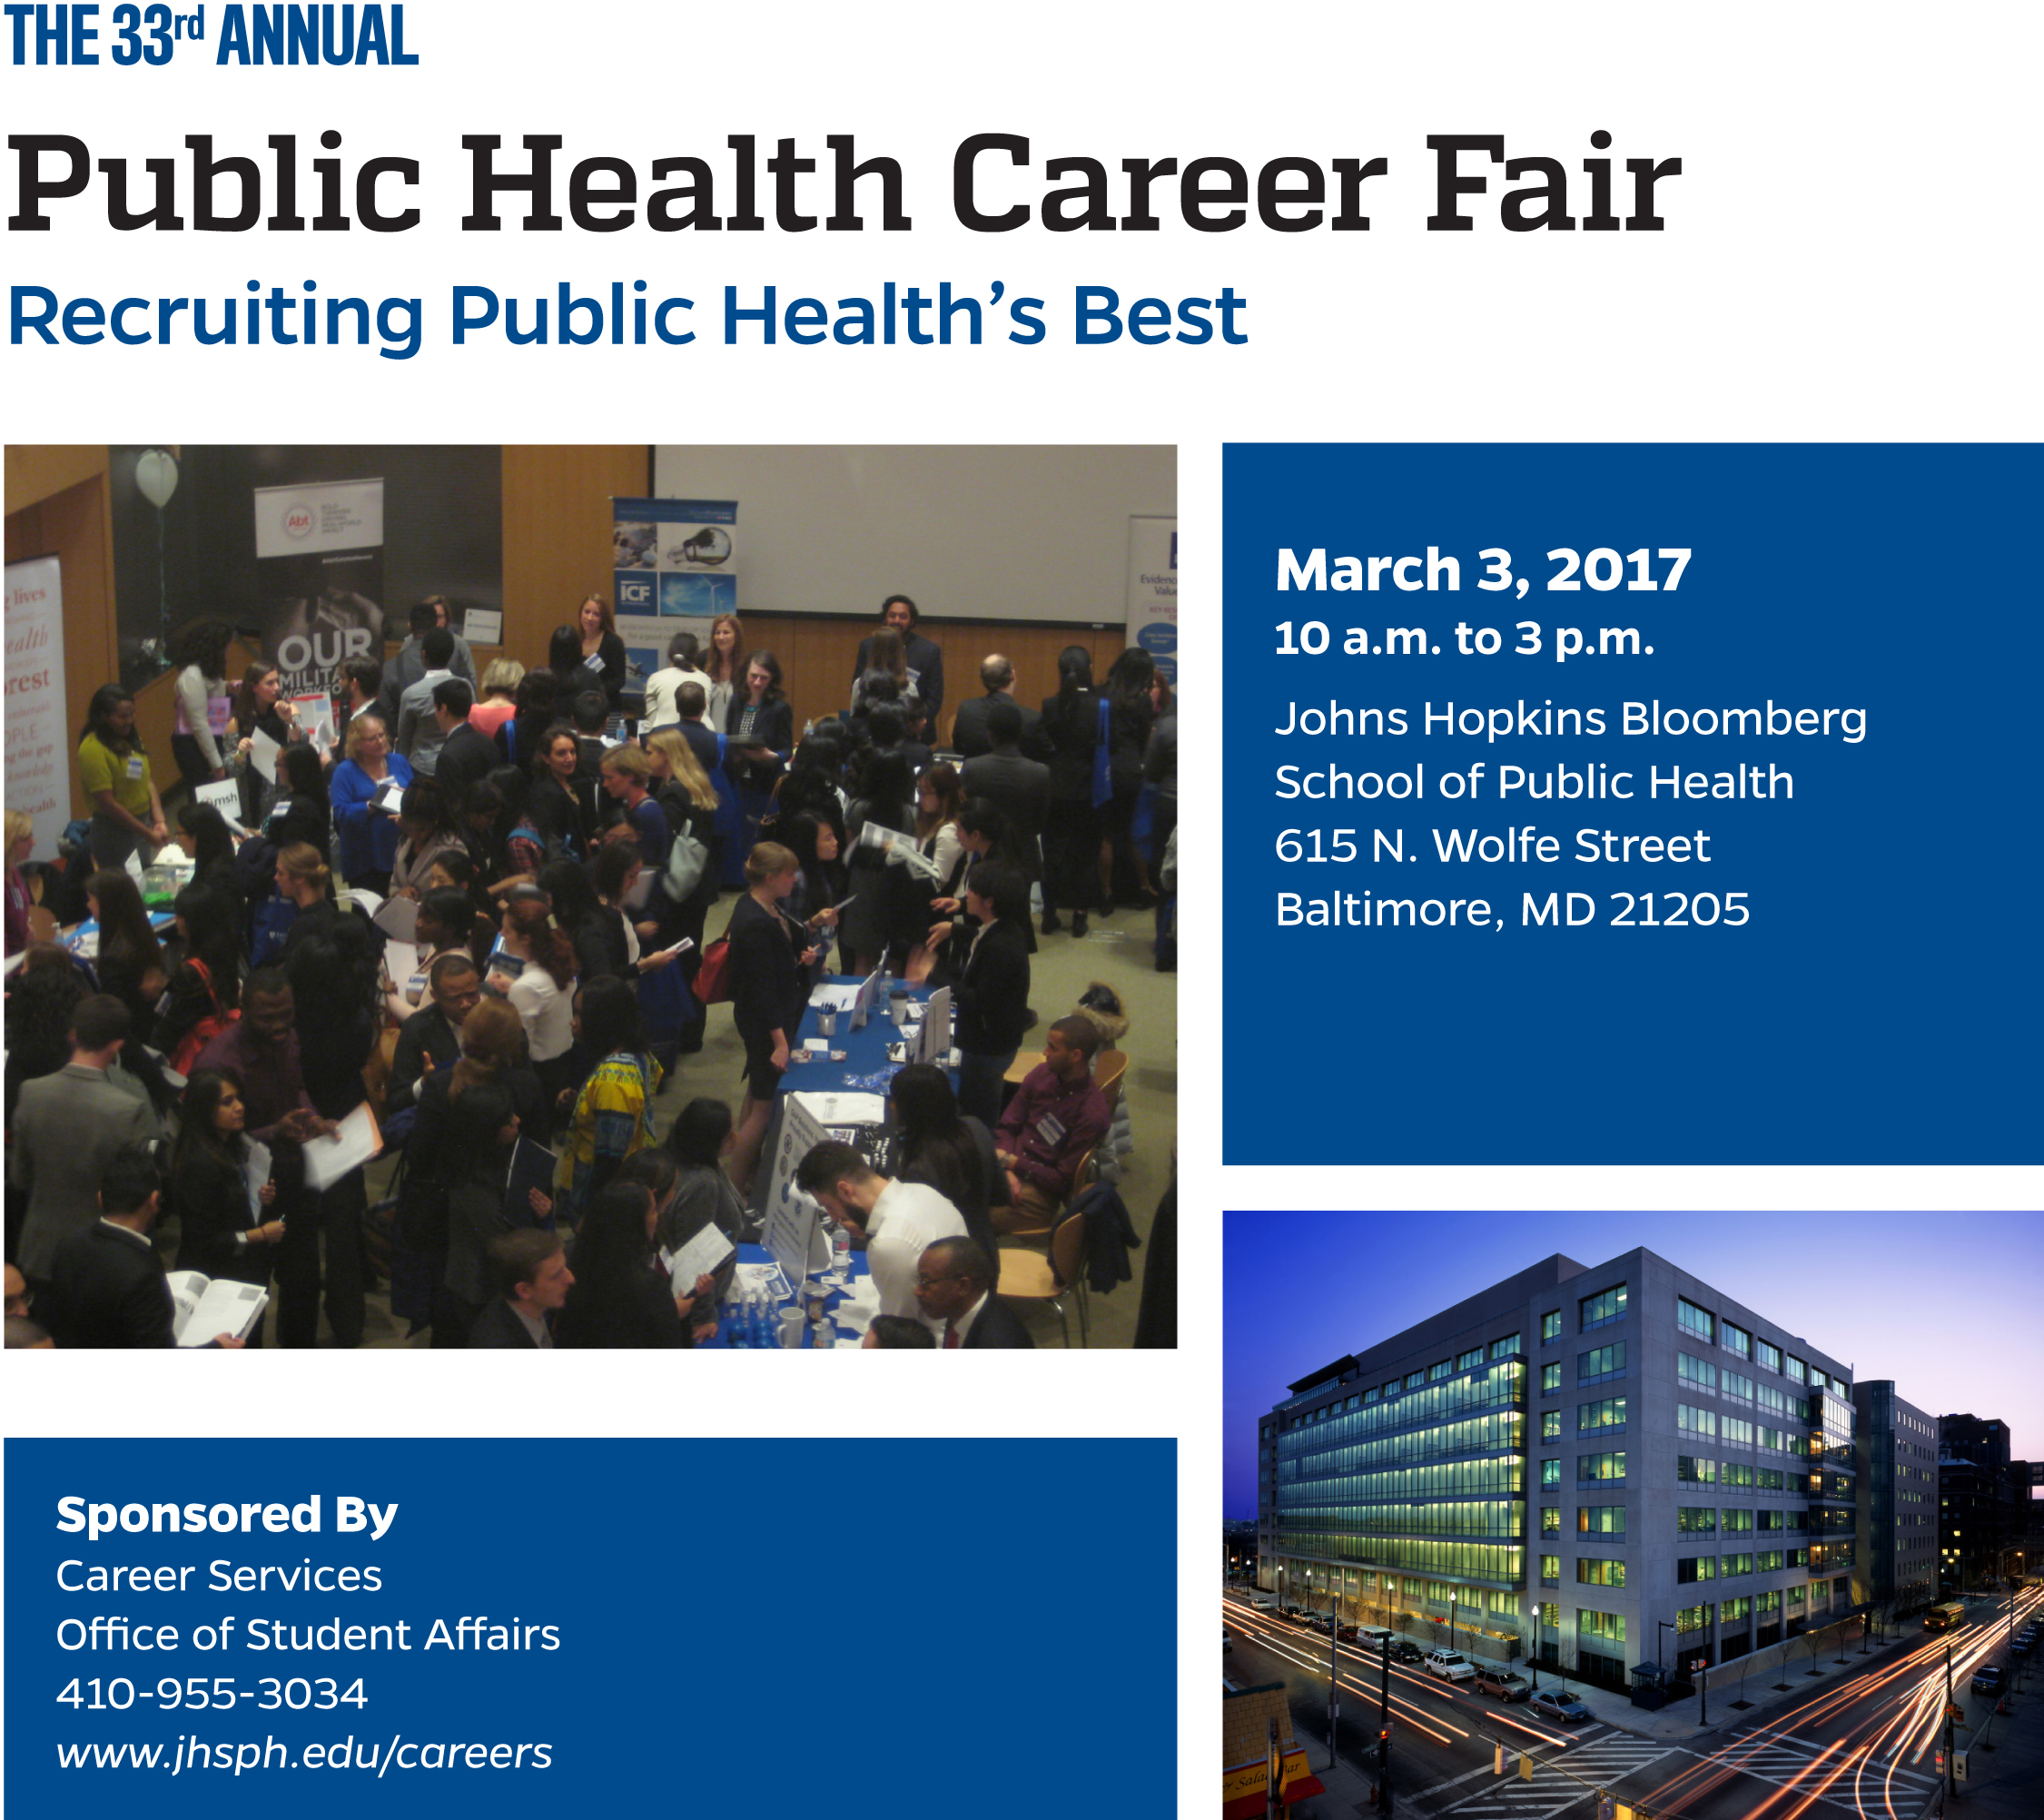 career fair events career services offices and services 2016 public health career fair